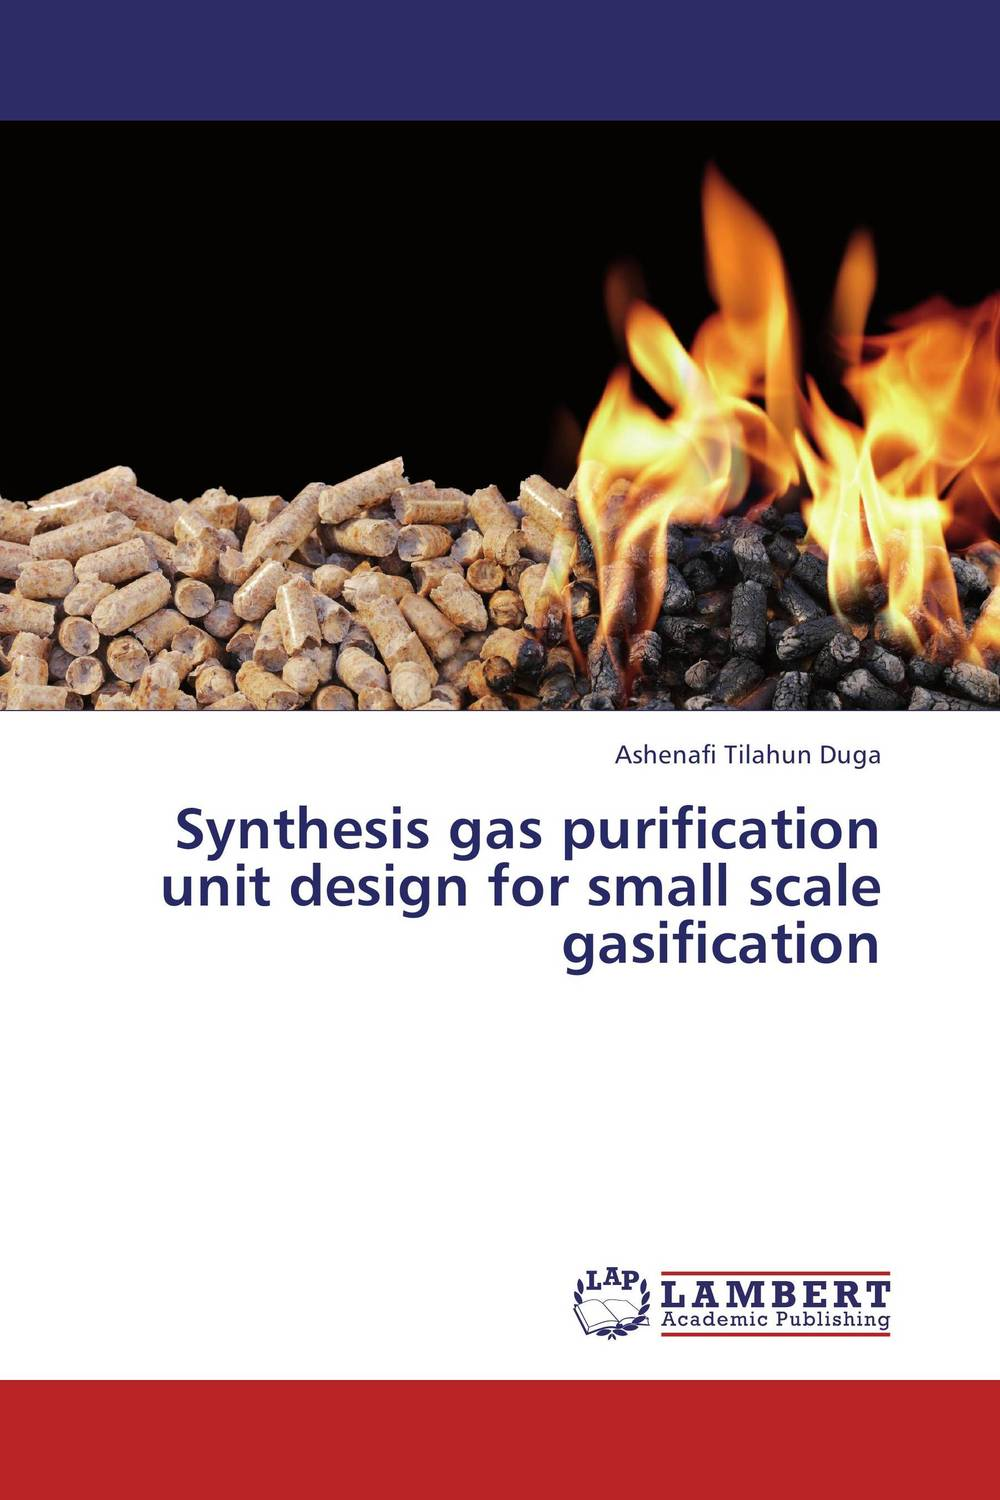 Synthesis gas purification unit design for small scale gasification yinan cui the design implementation and trajectory generation for small uavs